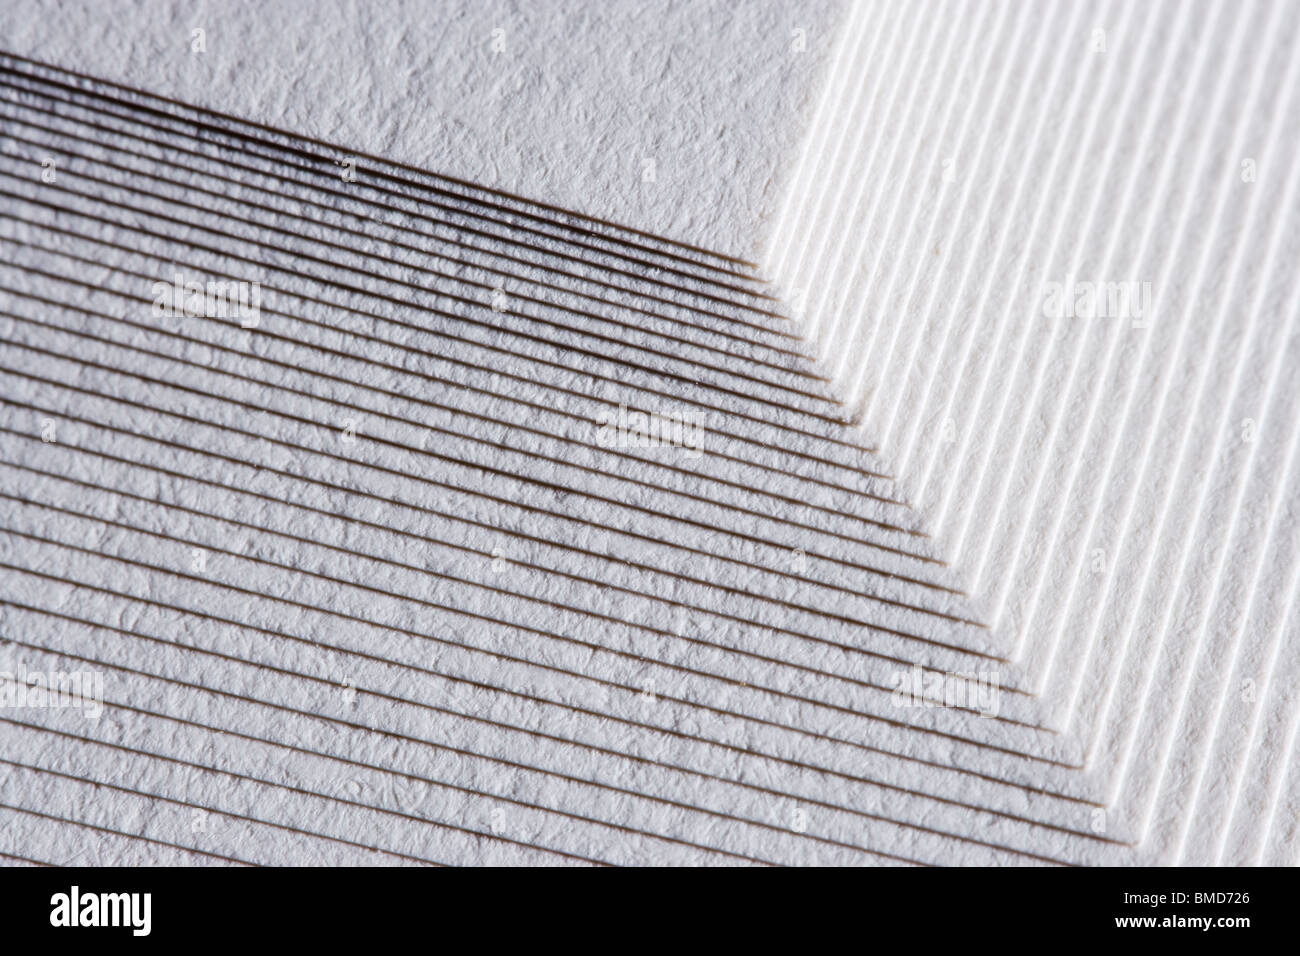 Stack of paper, close up - Stock Image